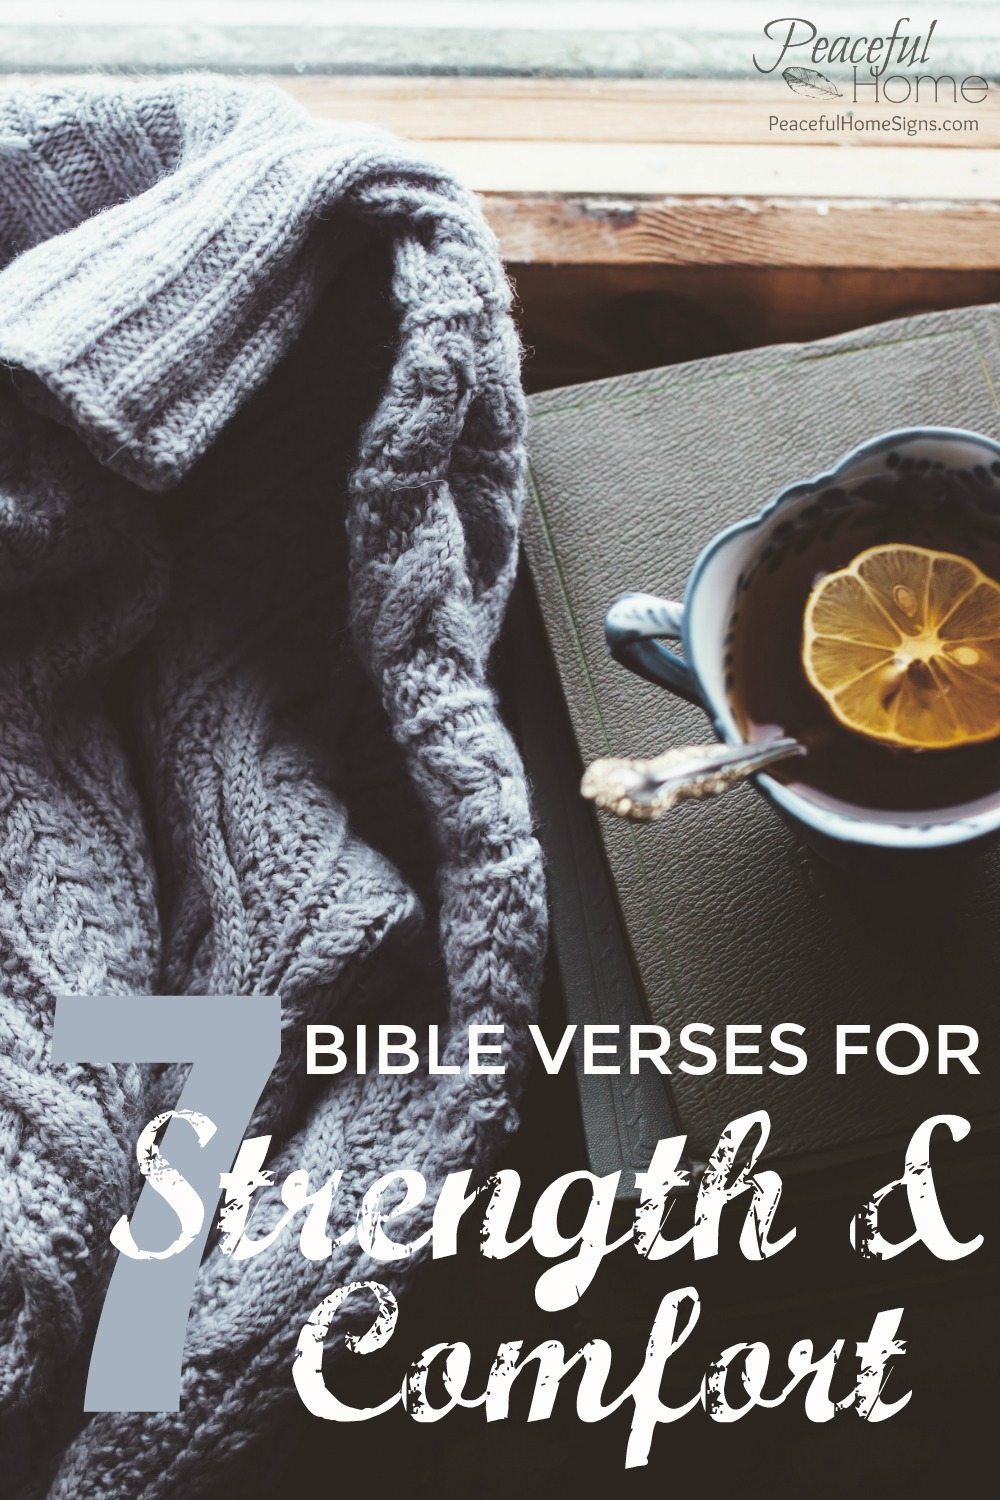 7 Bible Verses for Strength & Comfort - Peaceful Home